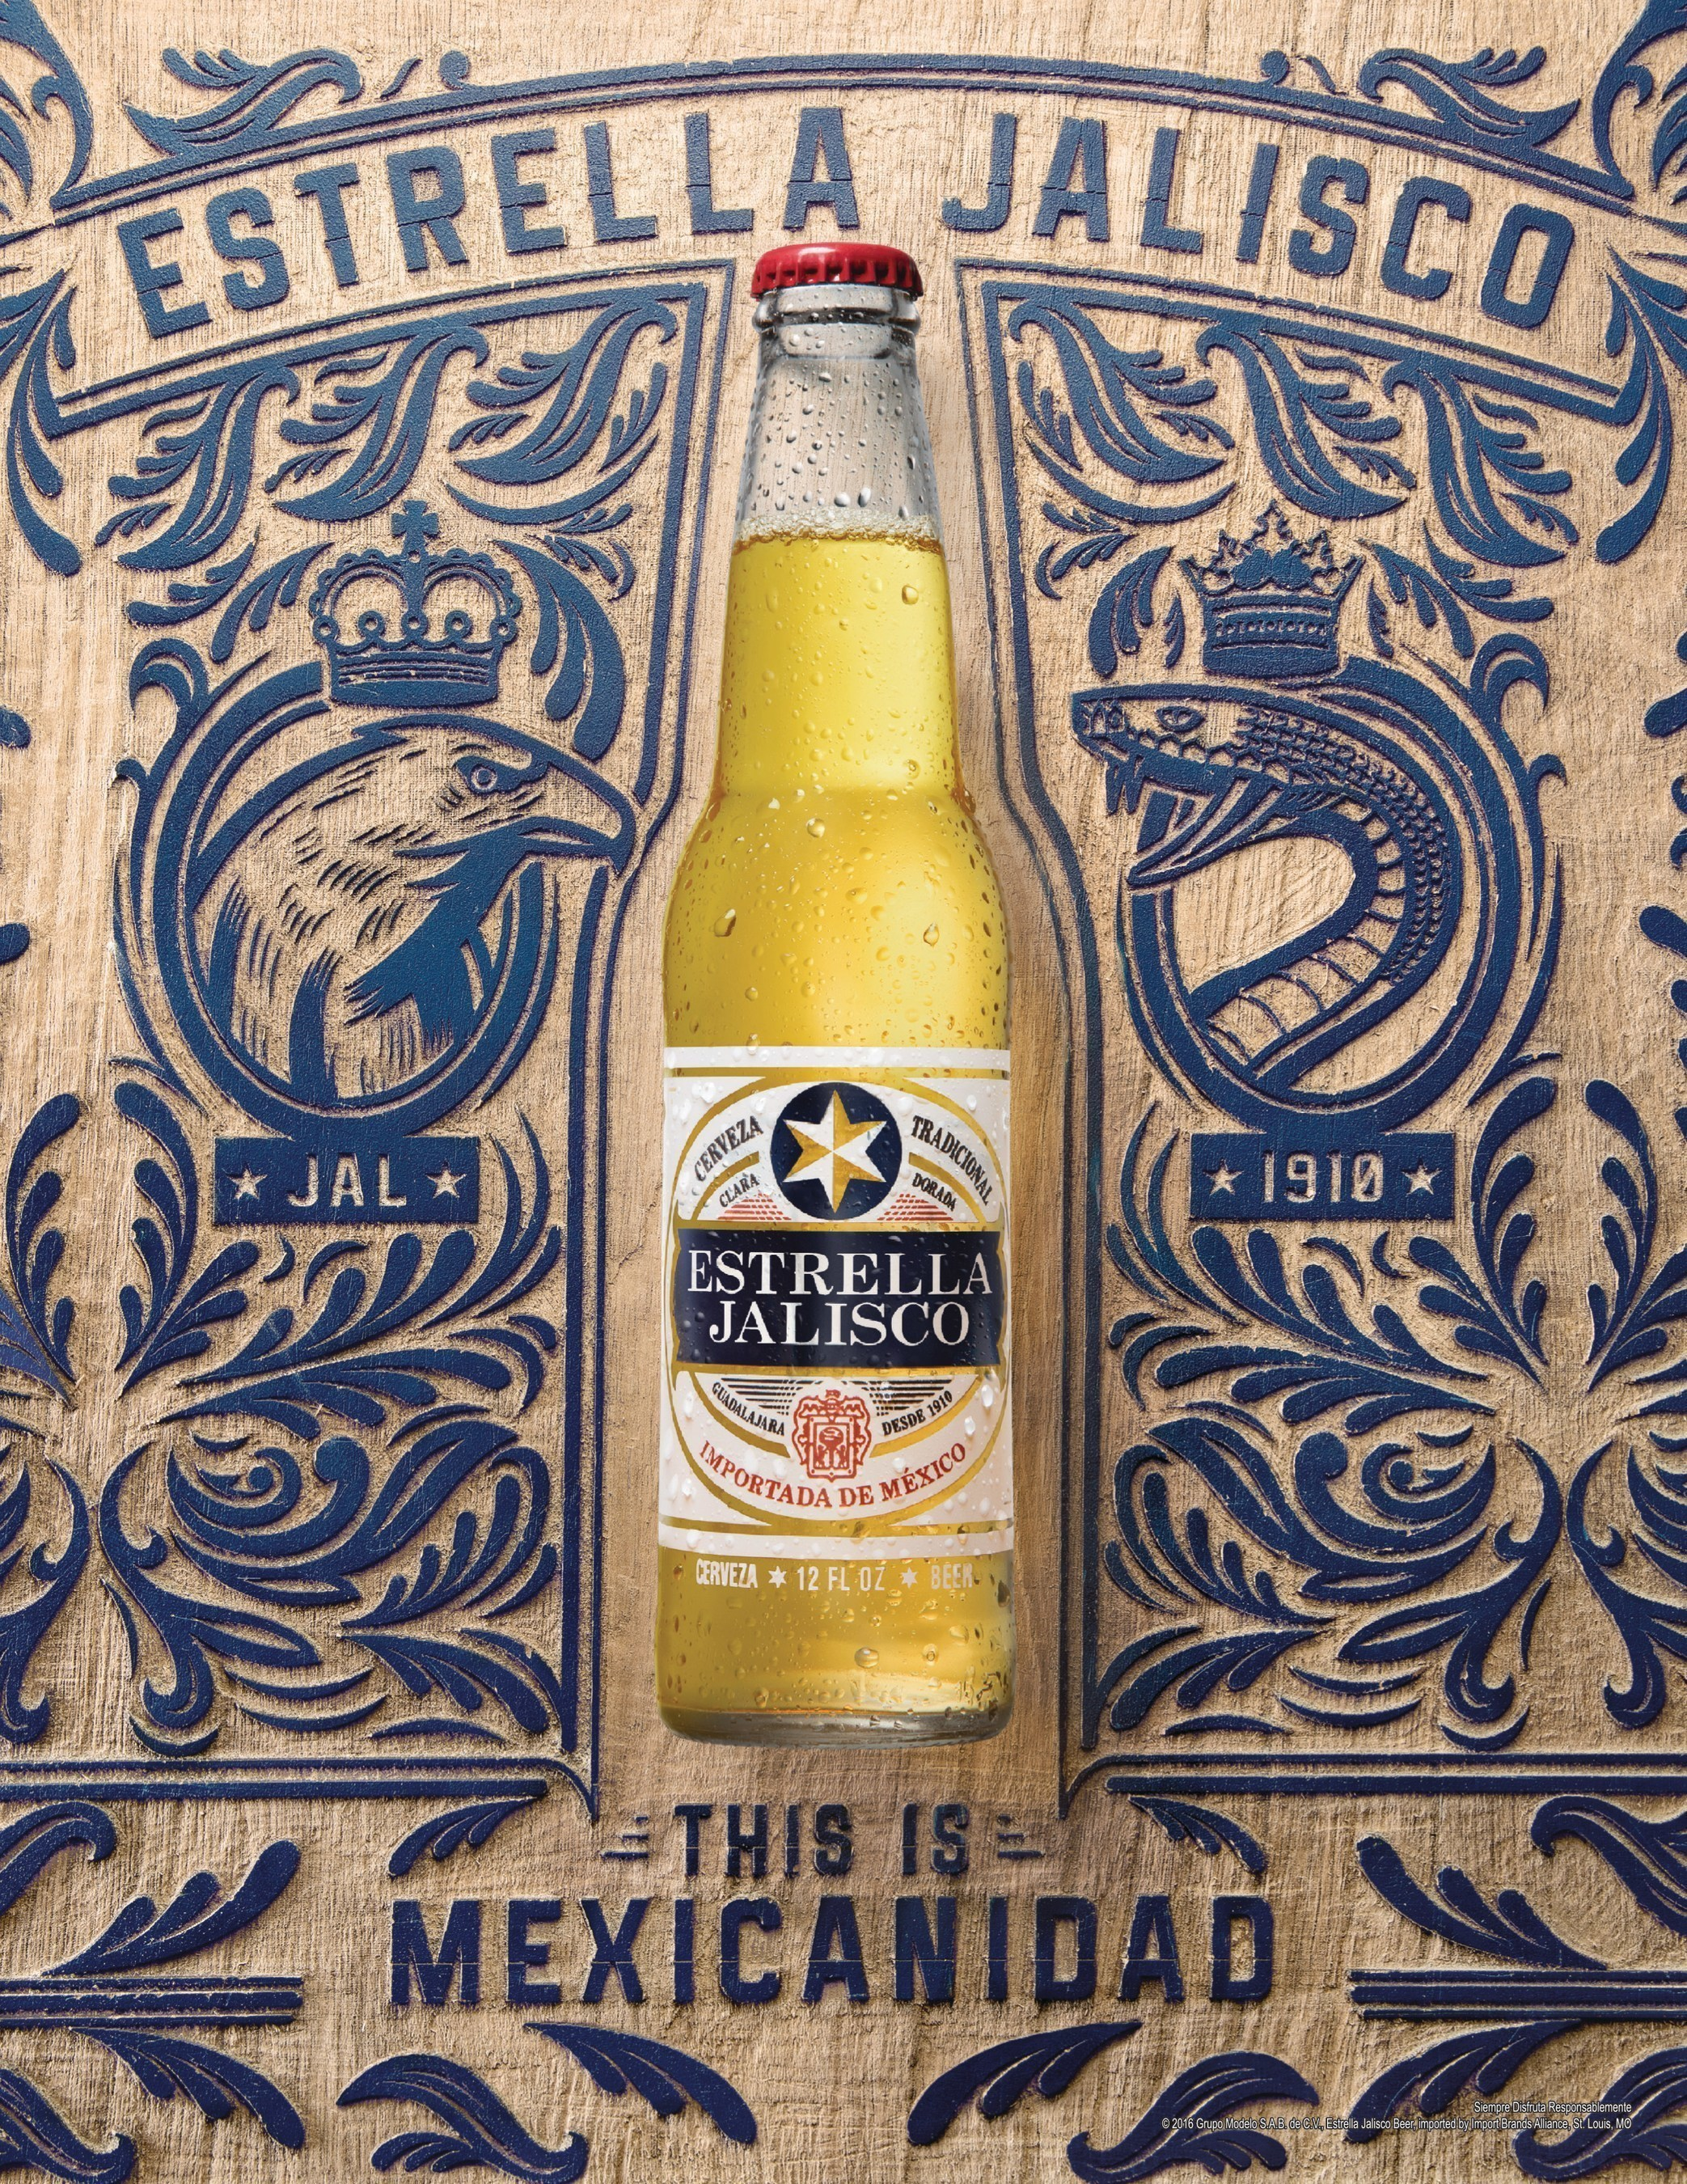 Mexican Beer Estrella Jalisco Debuts In The United States